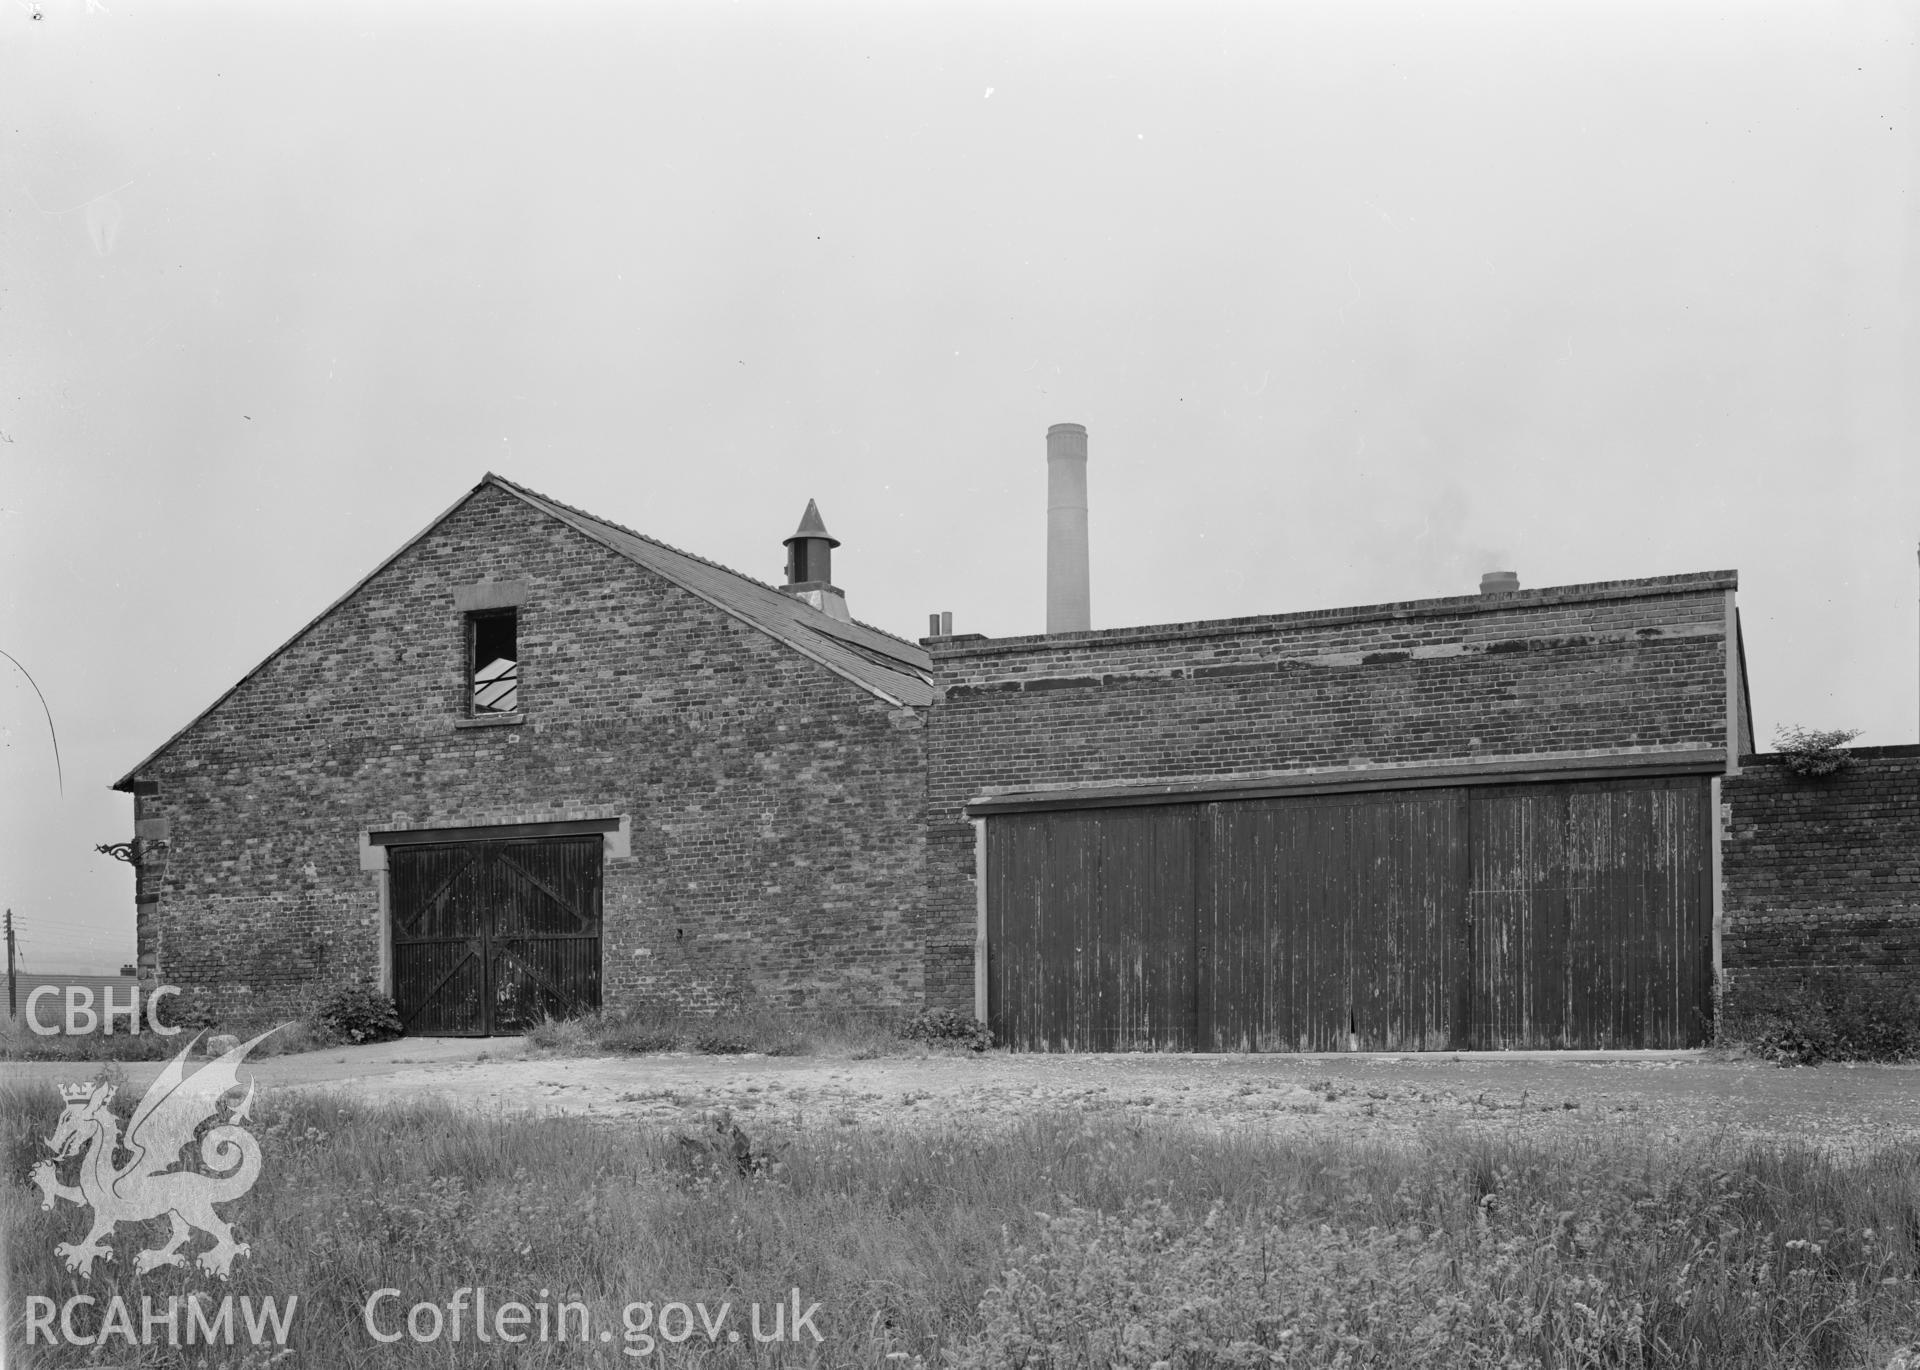 D.O.E photograph of Flint Gaol - south east elevation of drill hall and garages, from east. In castle outer ward (since removed).